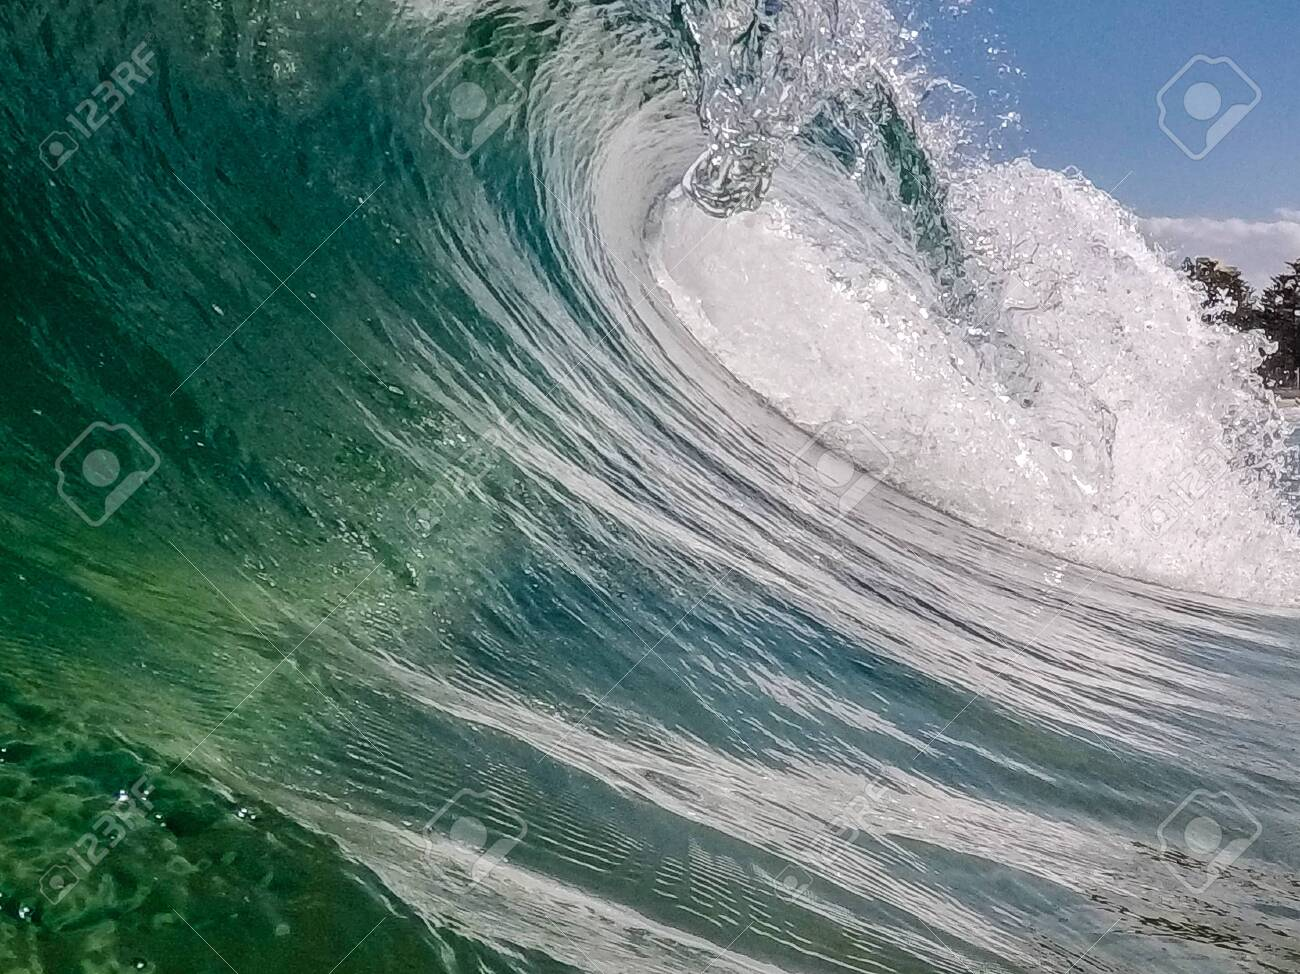 A wave breaks at the sea - 133776029